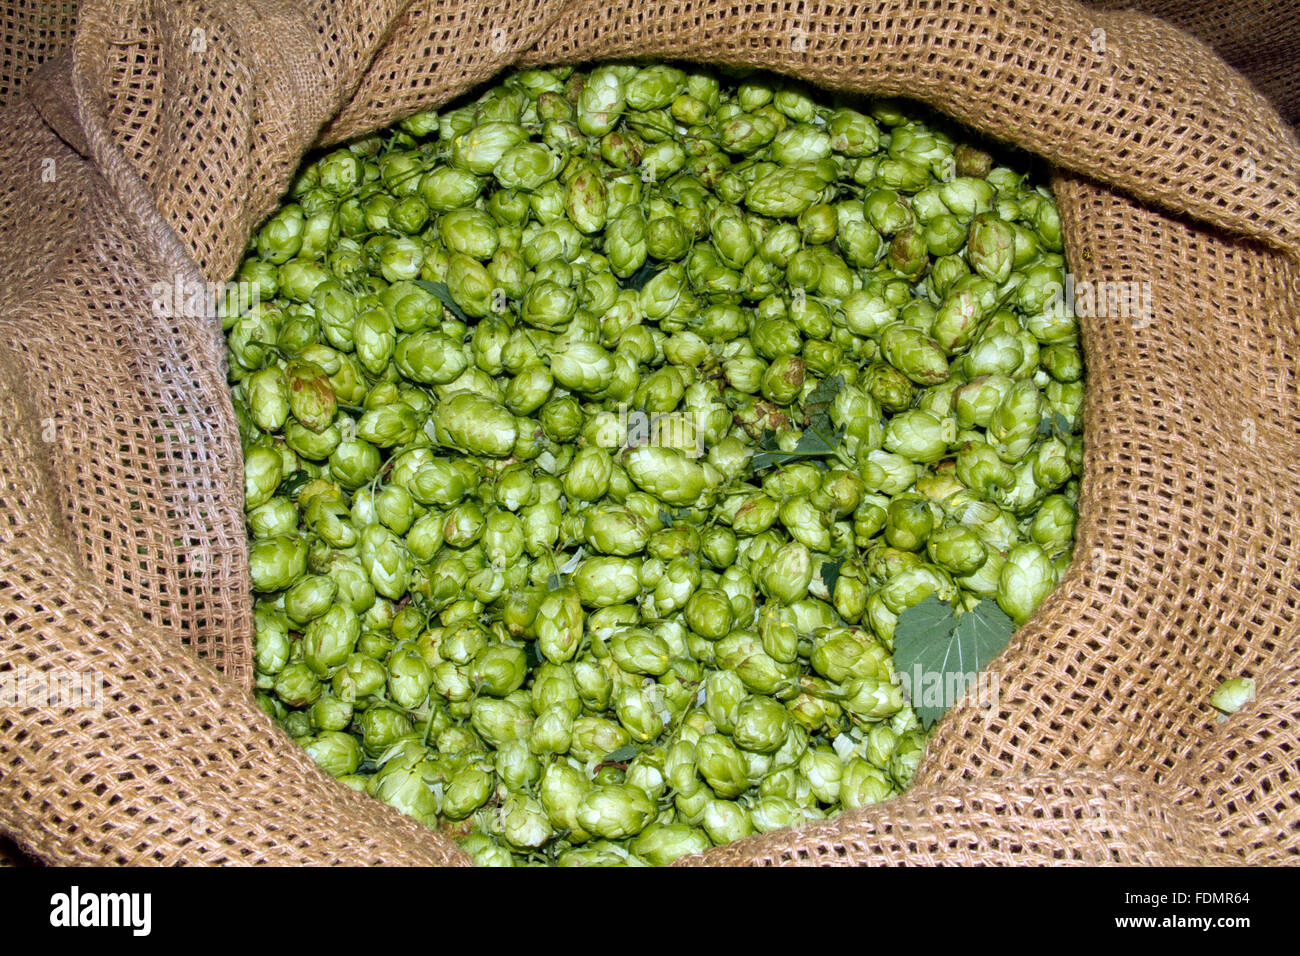 A pocket of hops with green hops showing through the open top. - Stock Image